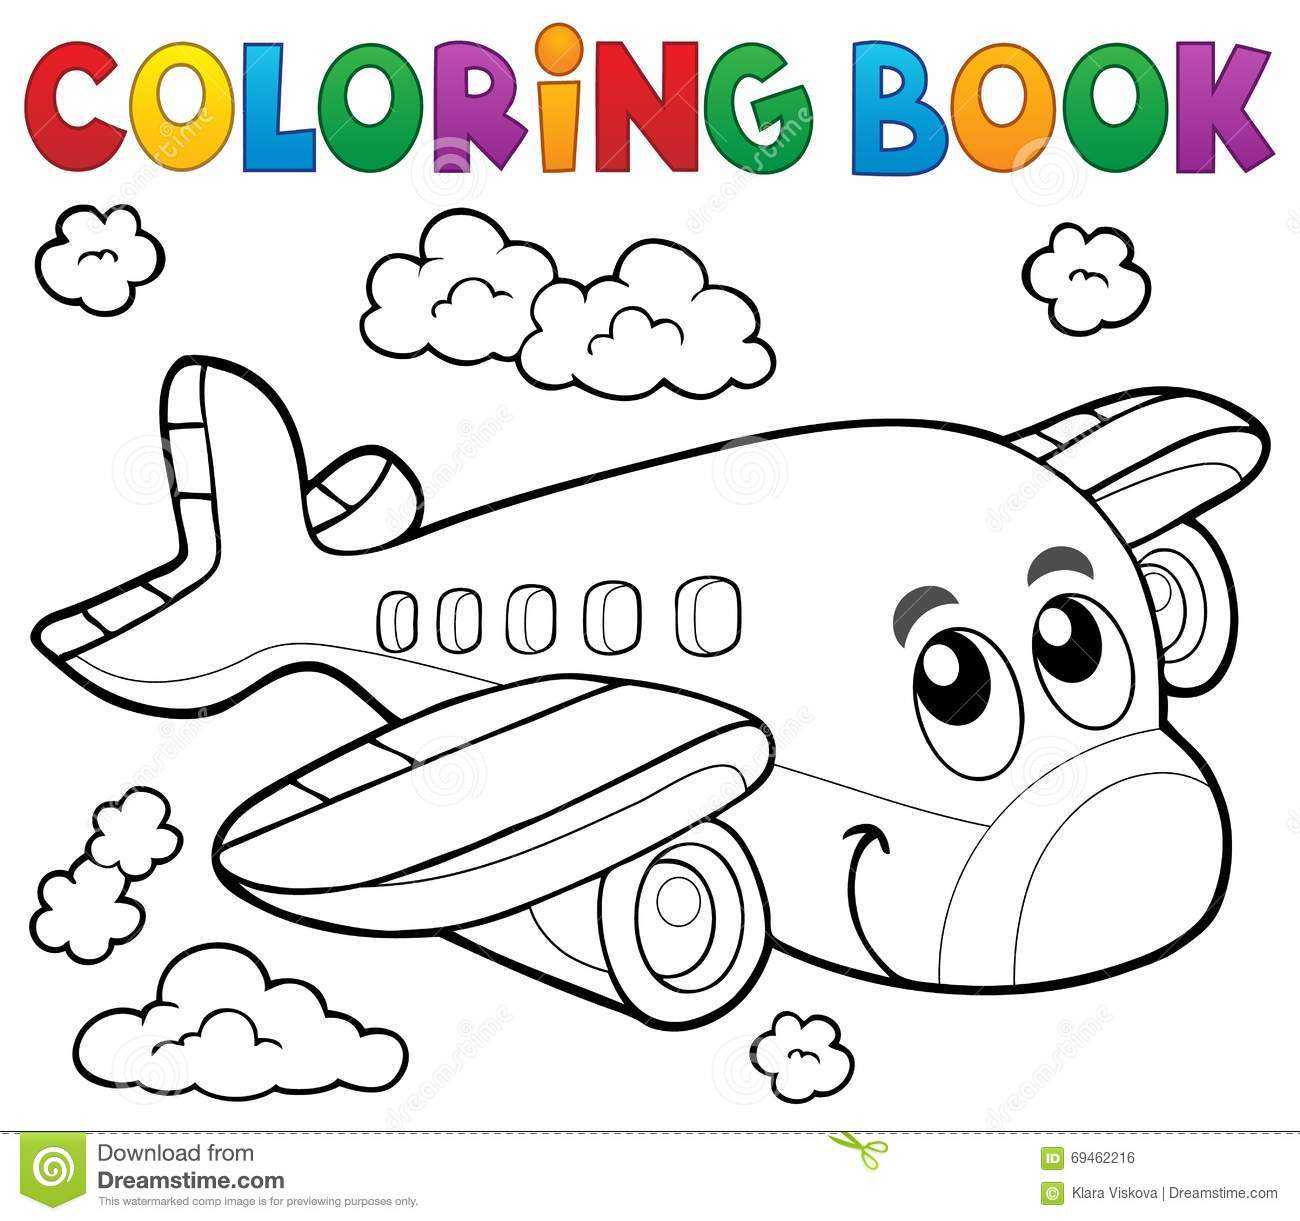 Tema 2 dell 39 aeroplano del libro da colorare illustrazione - Da immagine a pagina da colorare ...